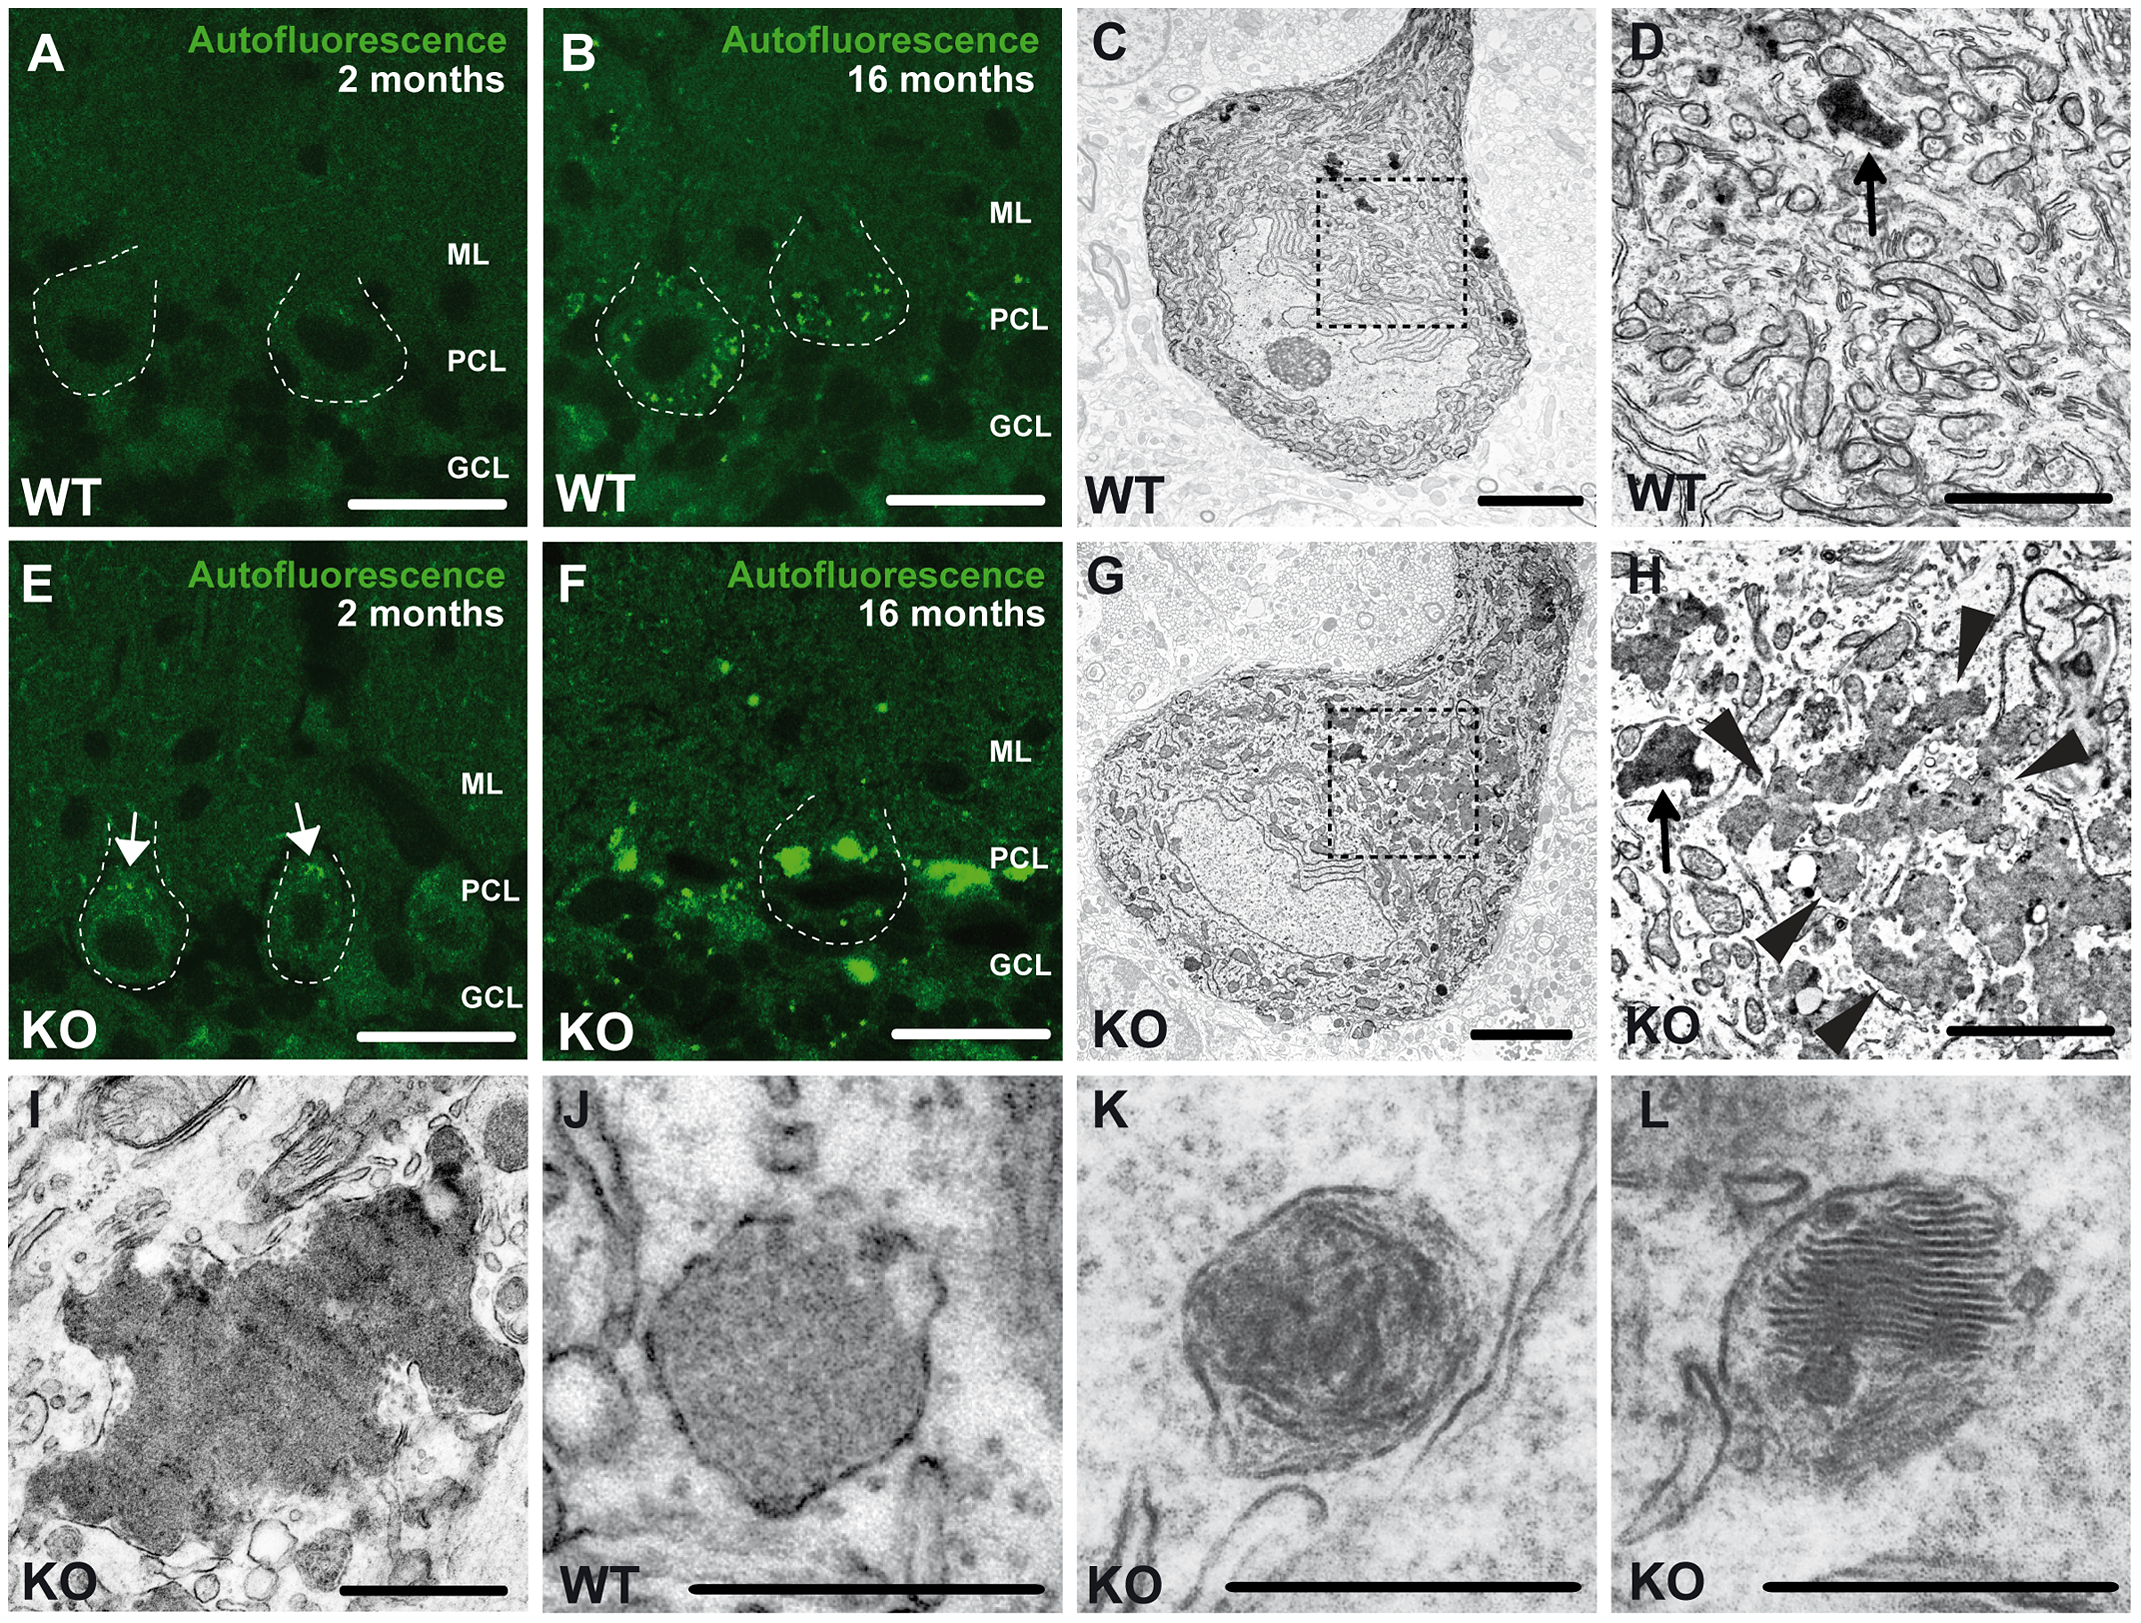 Accumulation of autofluorescent, electron-dense, membrane-enclosed material in knockout mice.